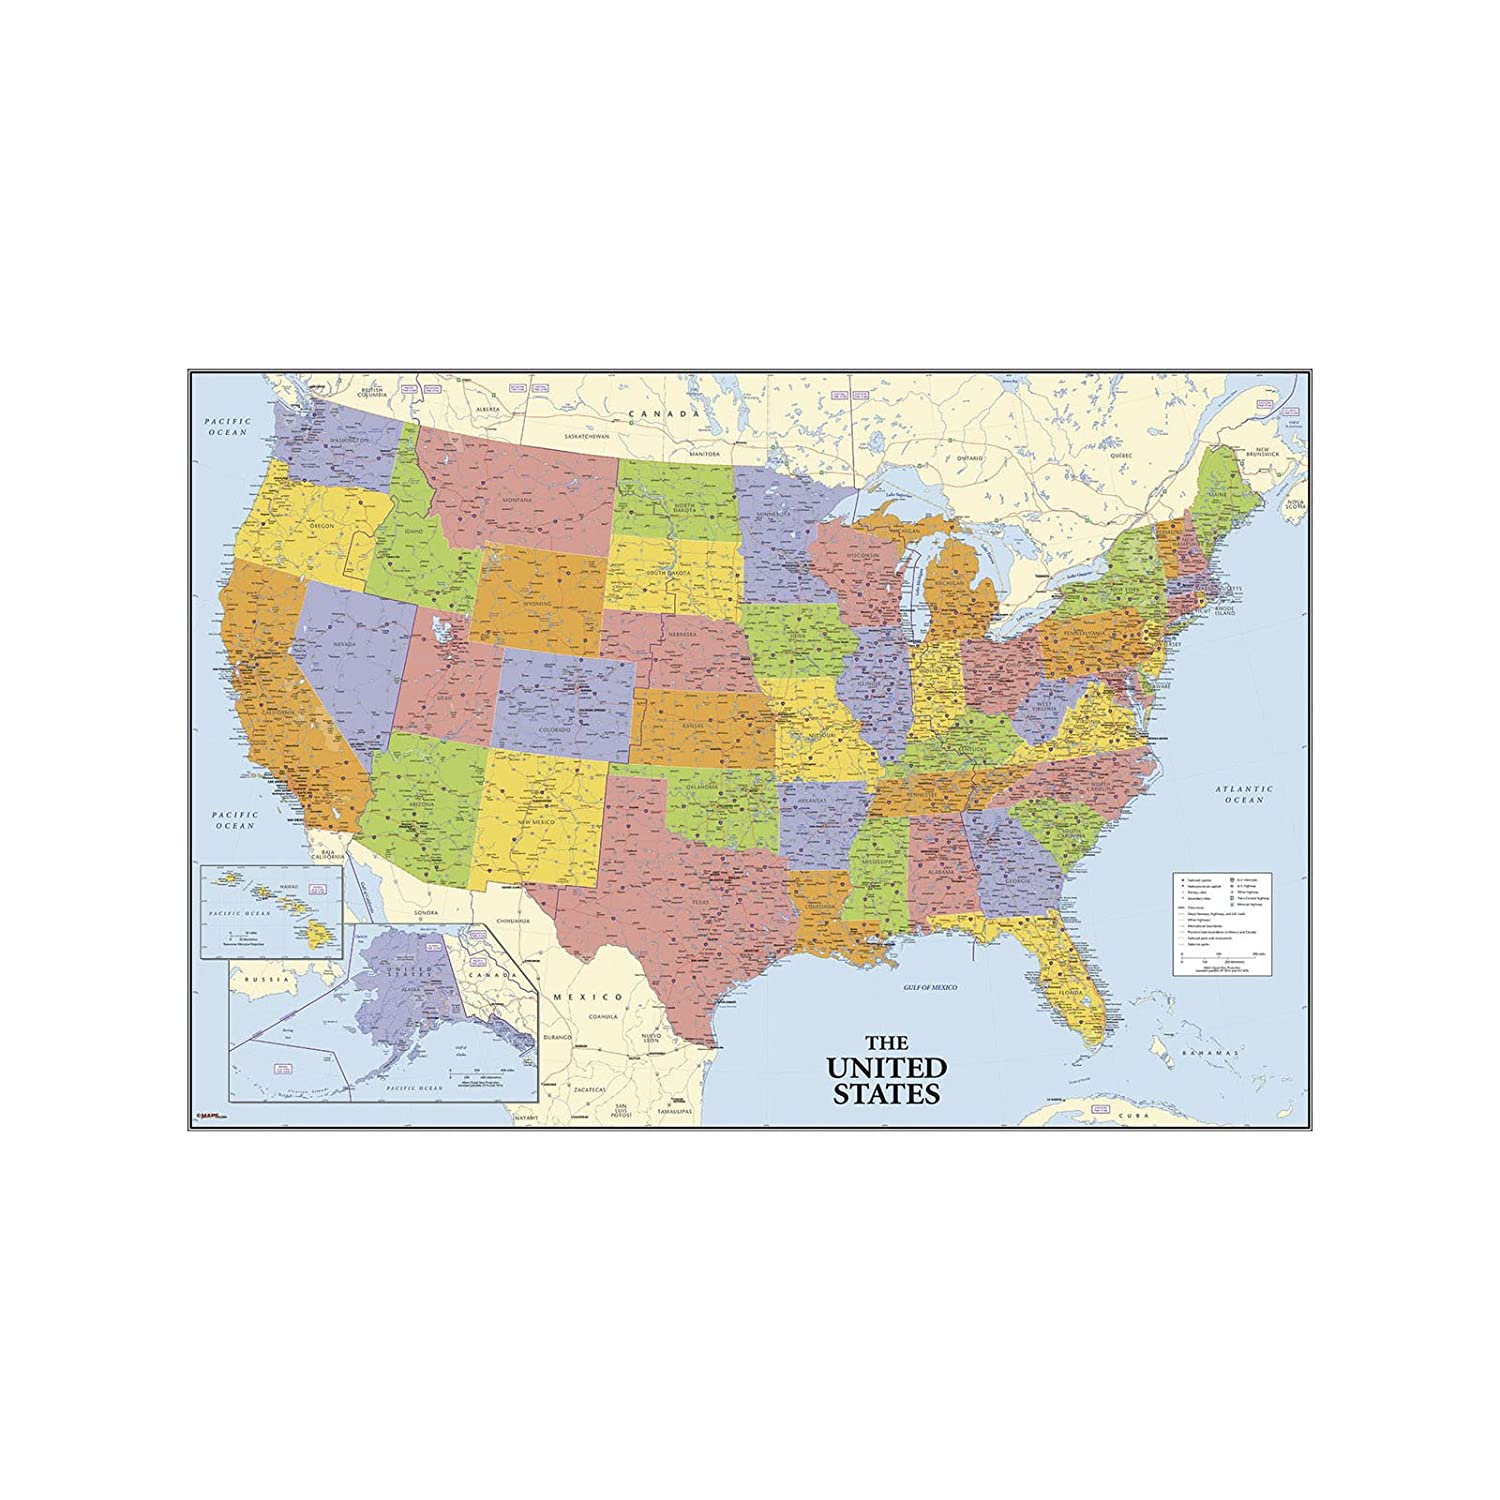 Amazoncom RoomMates World Map Dry Erase Peel And Stick Giant - Giant us map